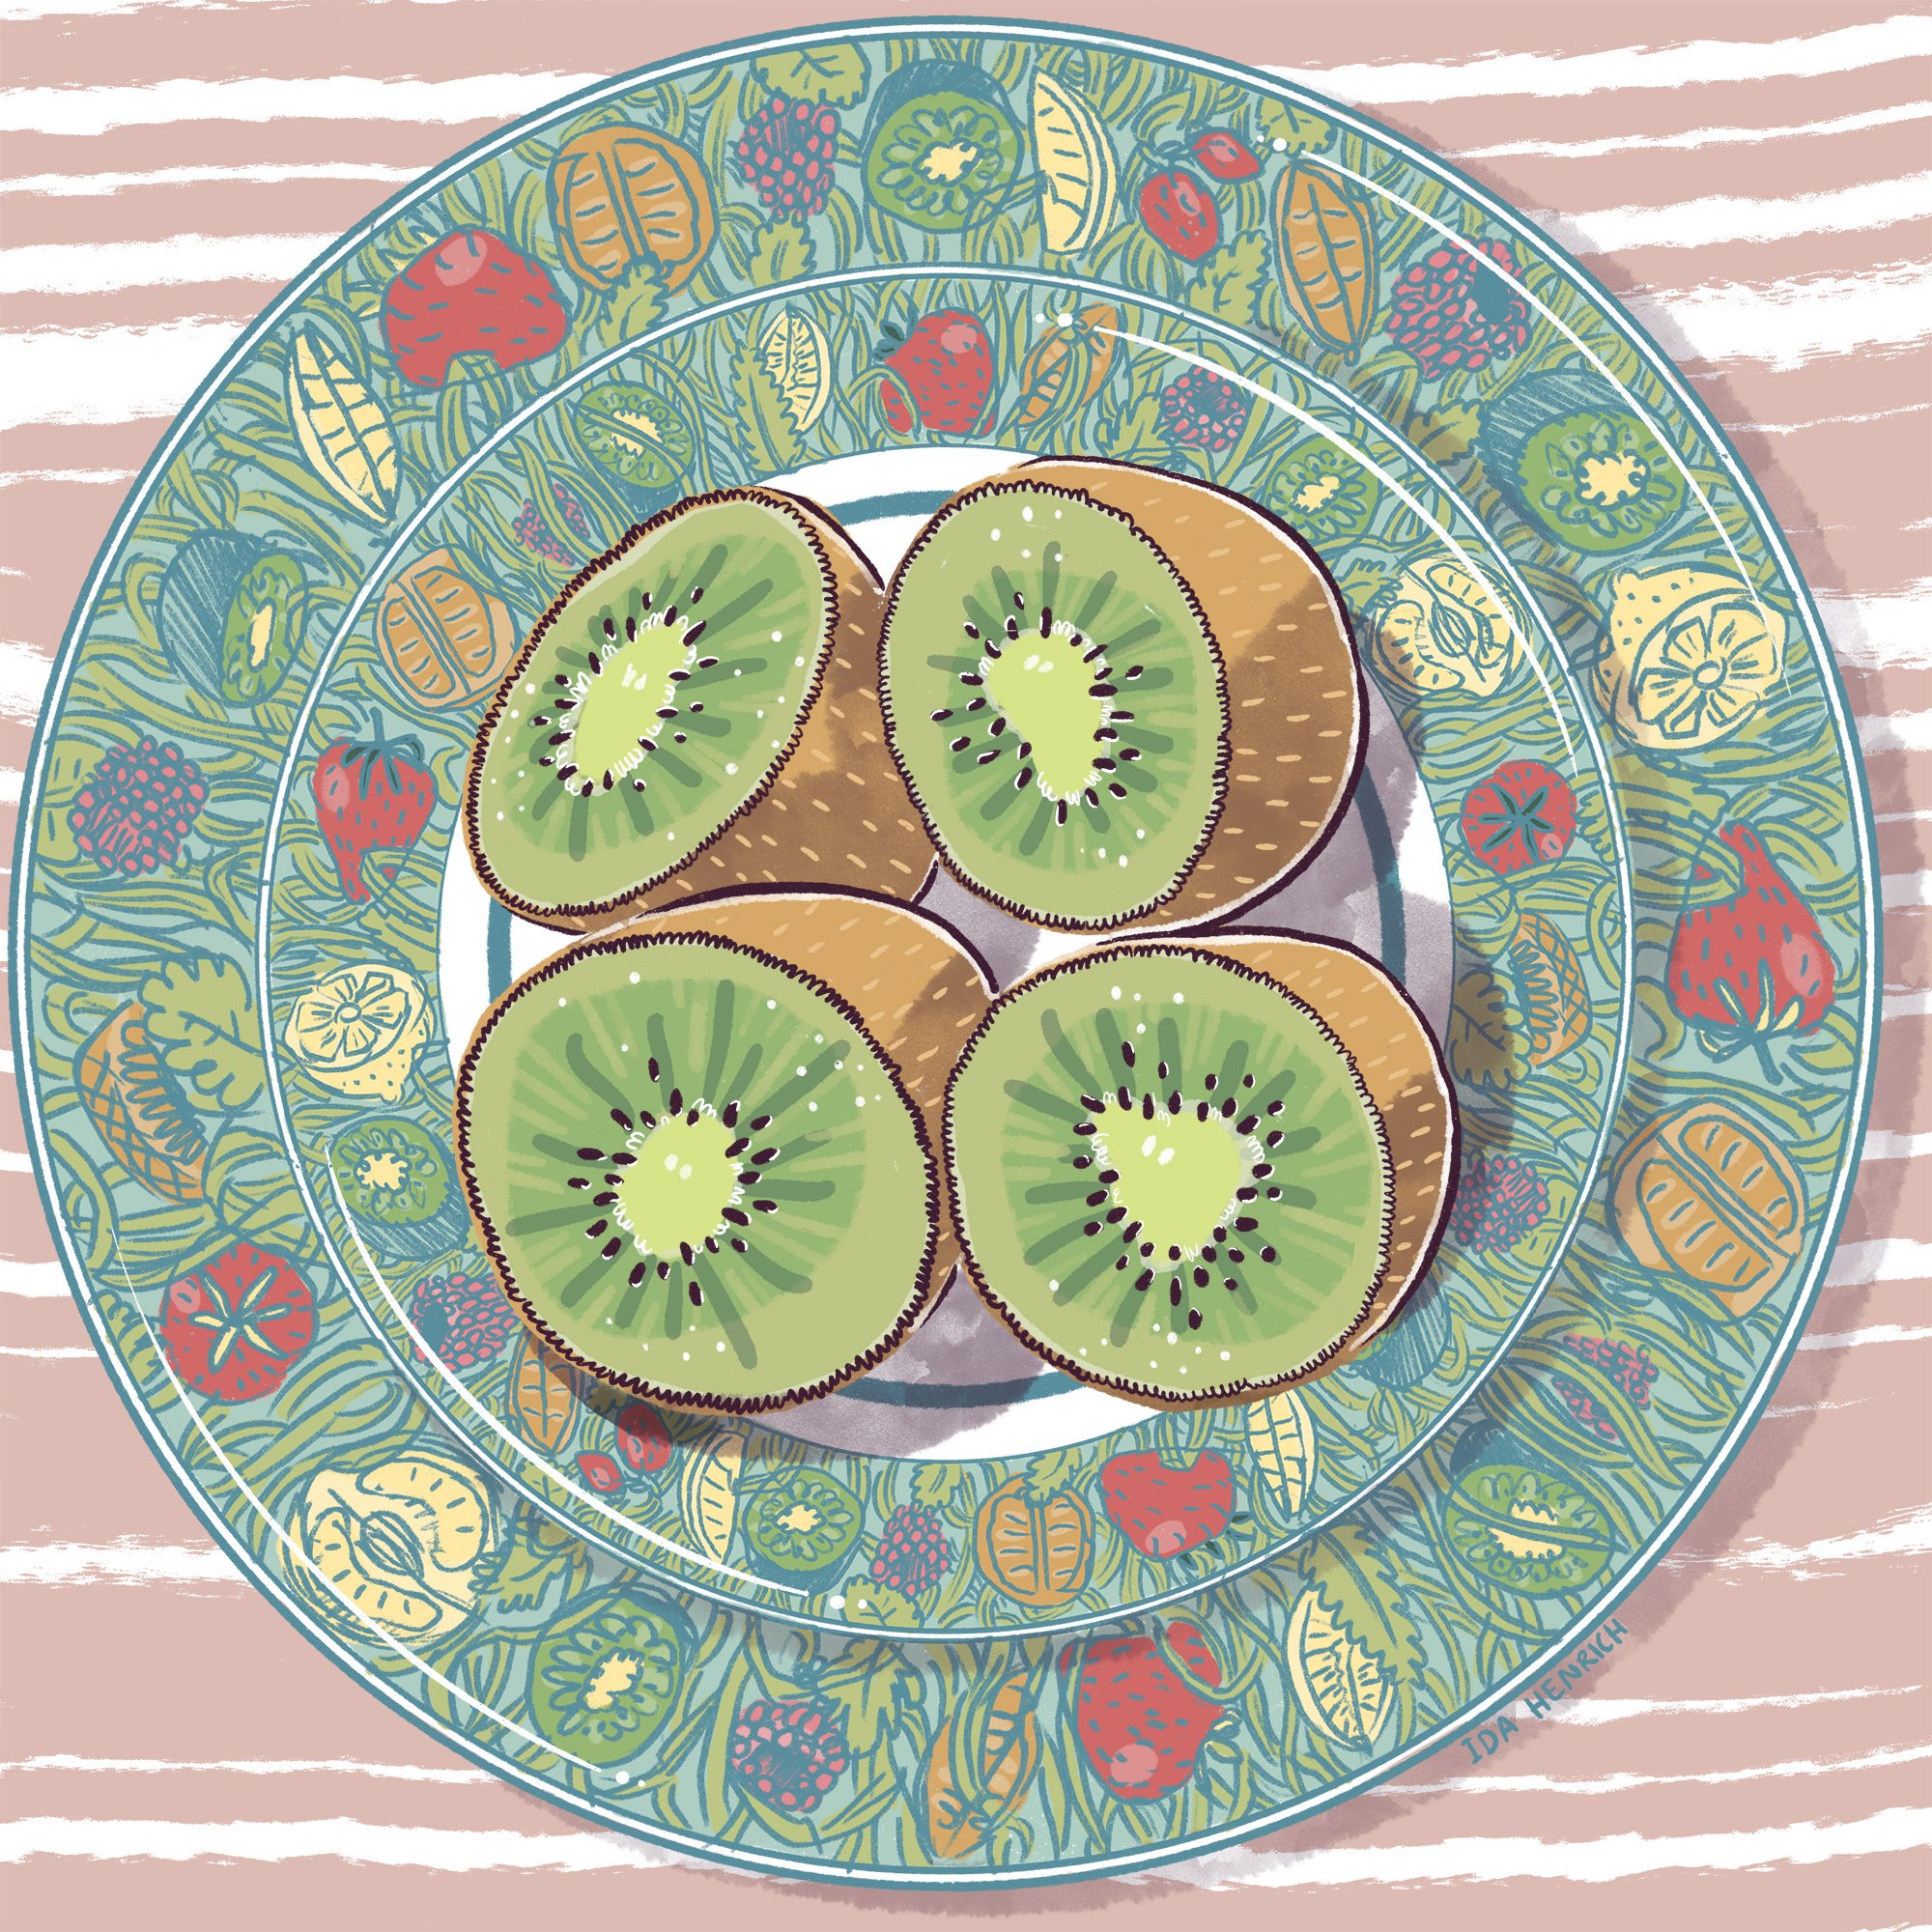 Image showing kiwi halves on a plate.